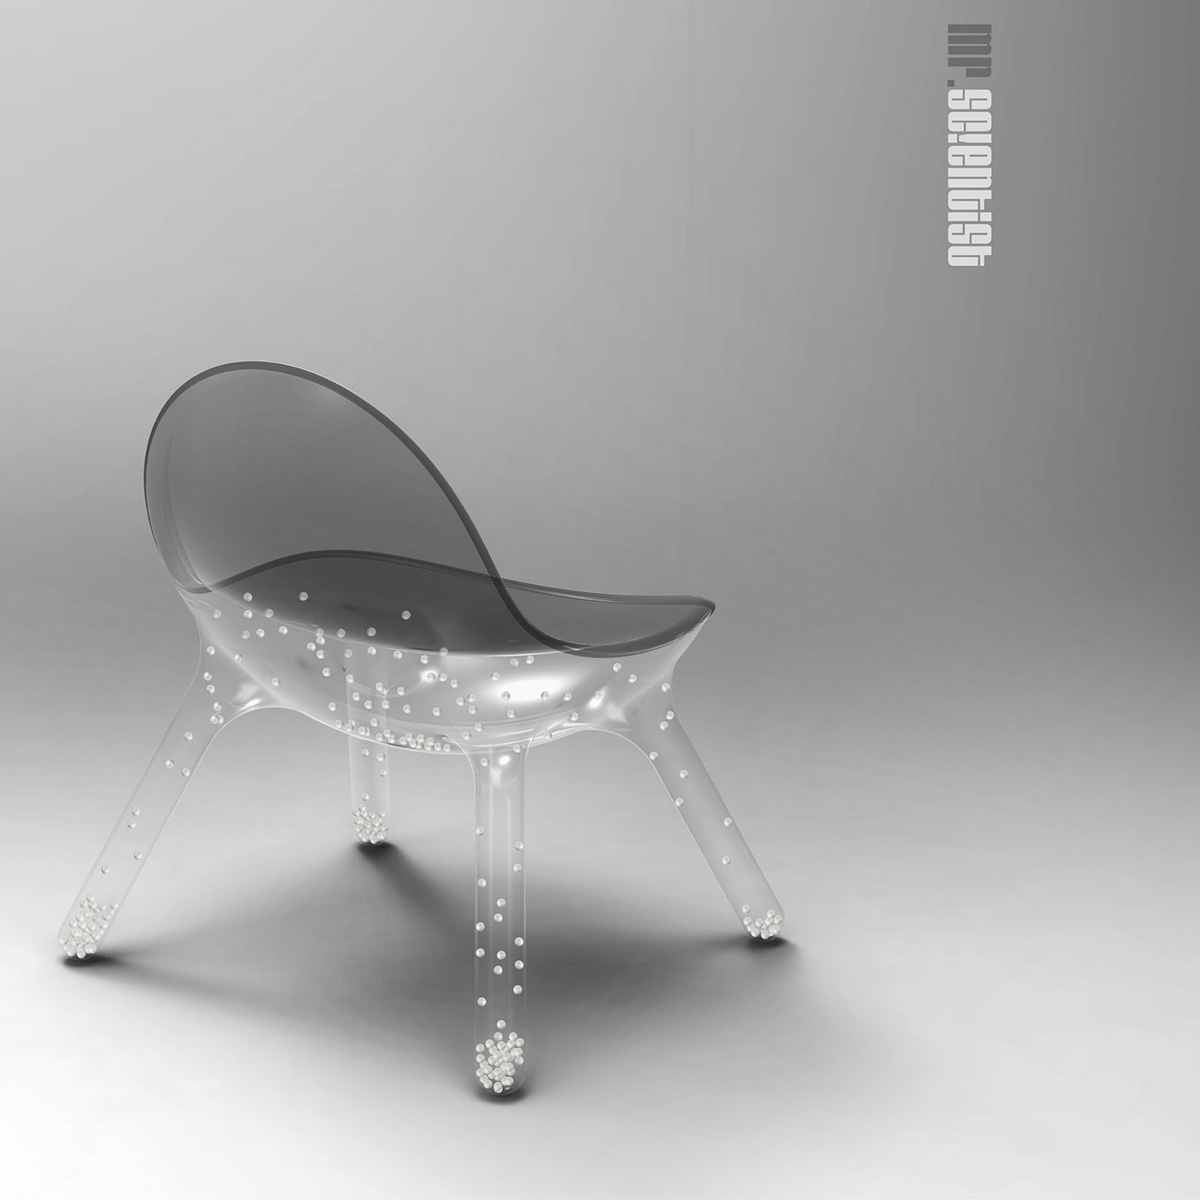 Mr Chair by designer Paul Sandip - 02